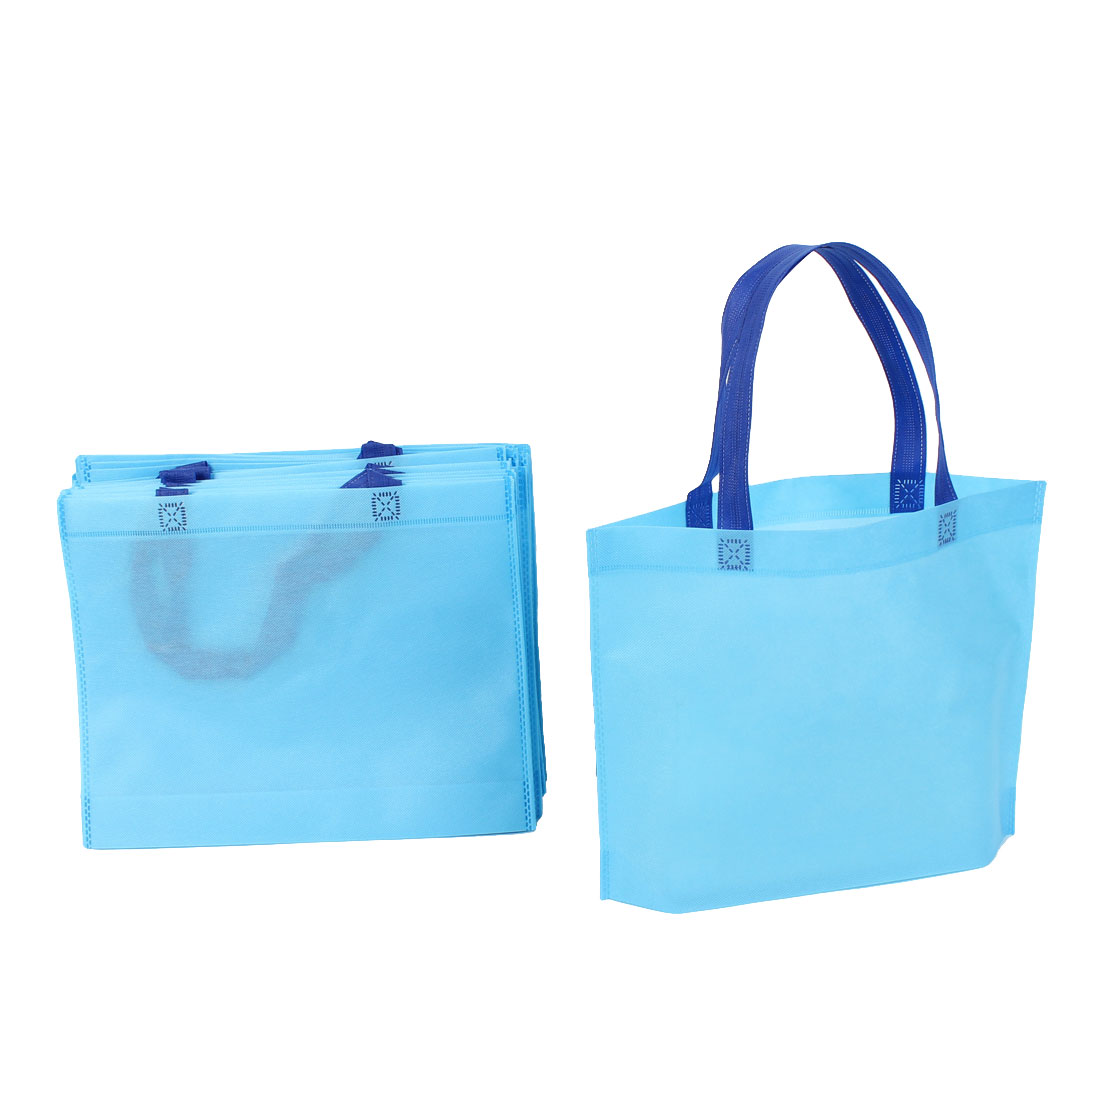 Home Non Woven Foldable Reused Shopping Bag 35cm x 28cm Blue 20 Pcs